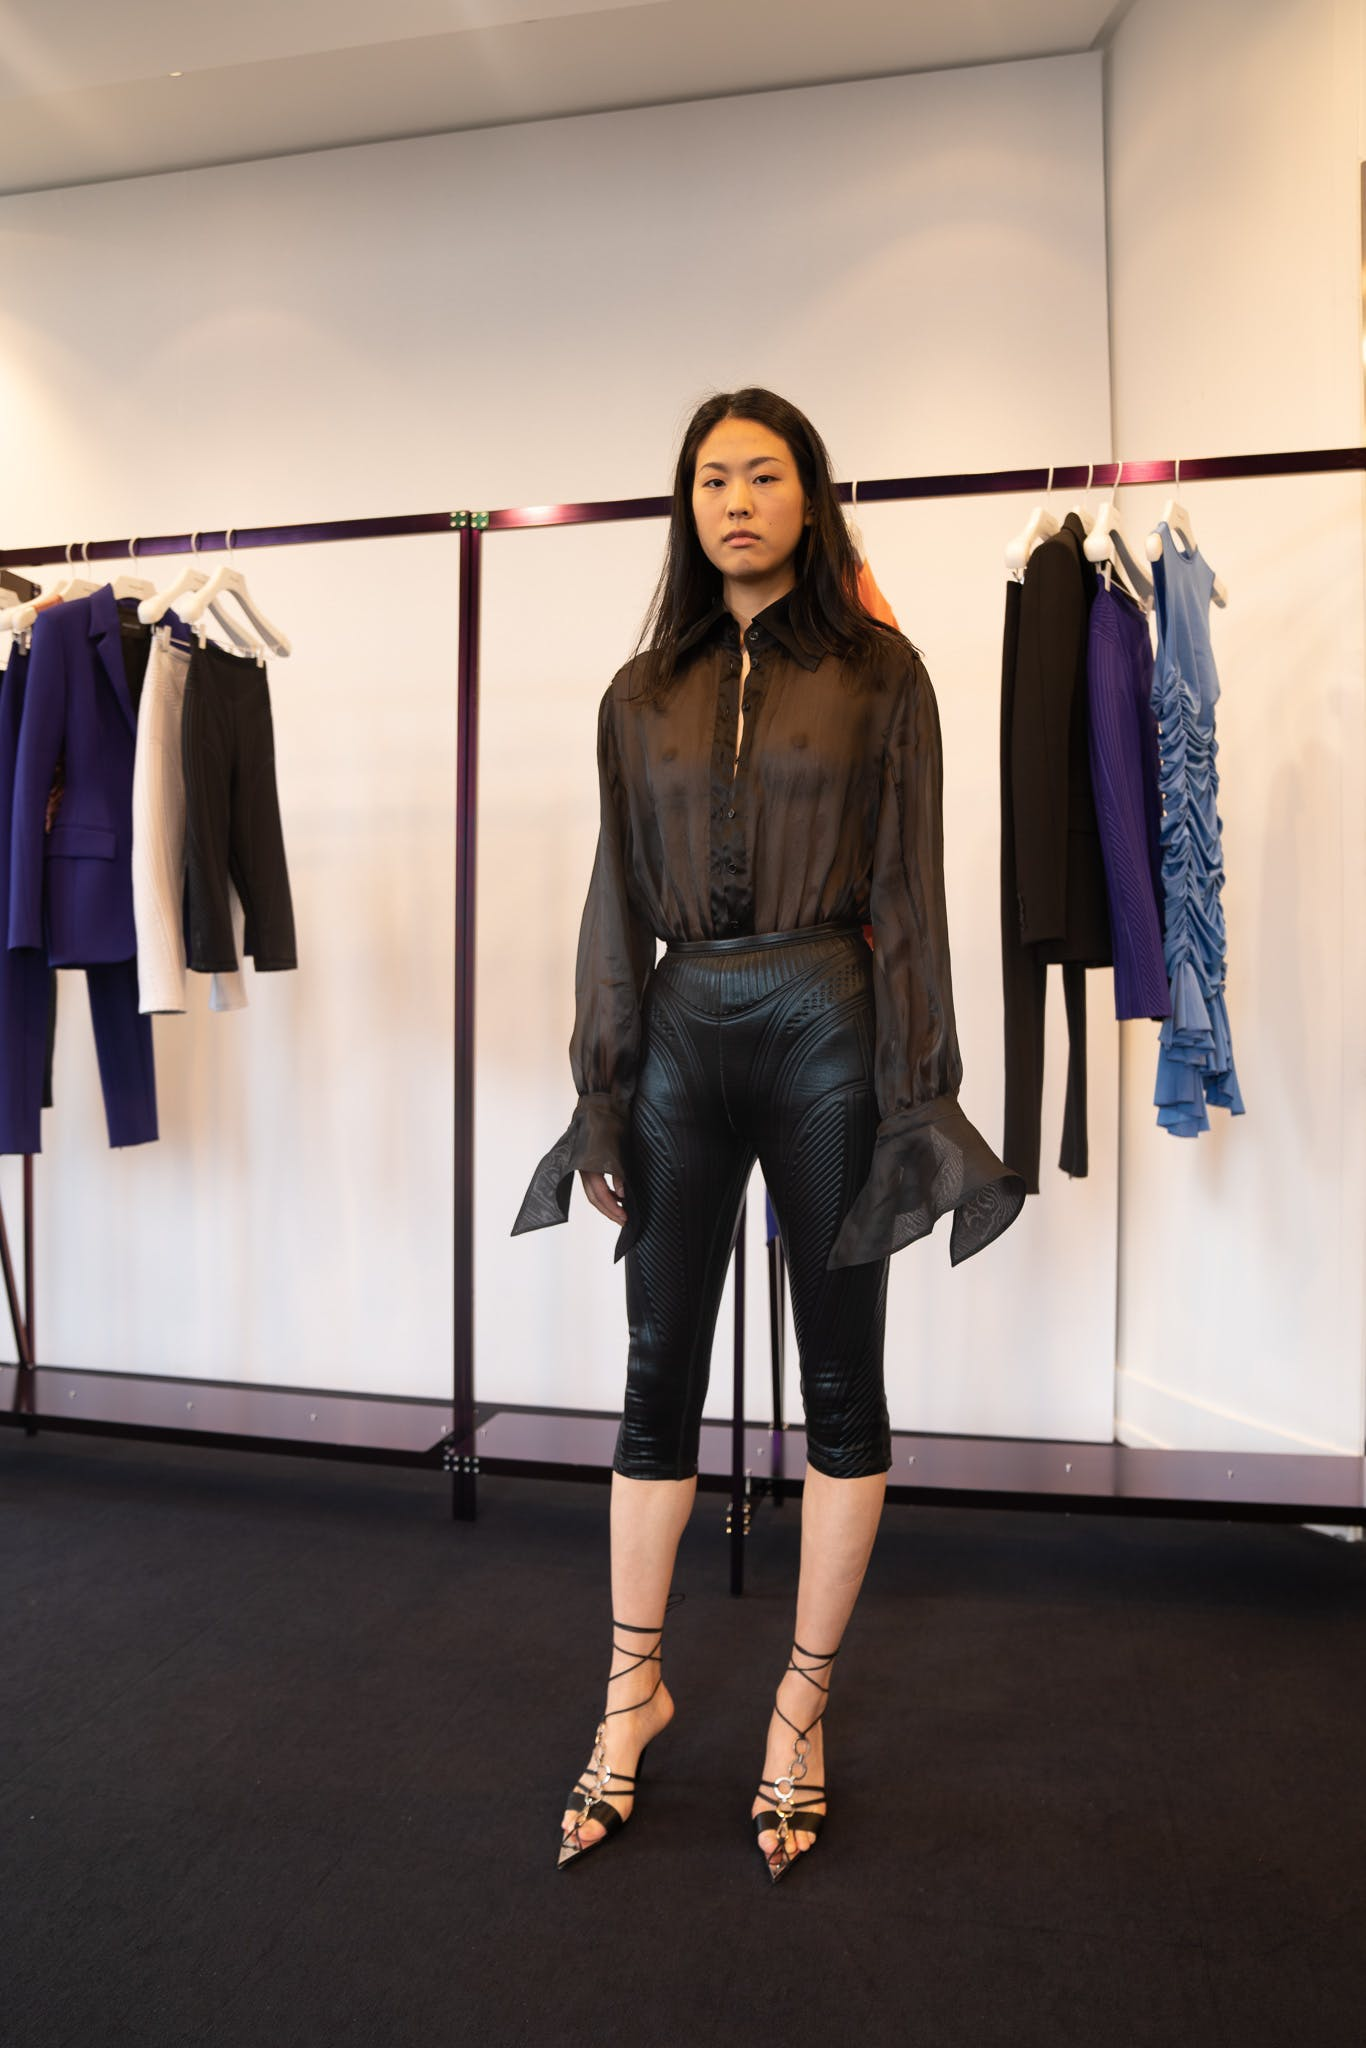 Mugler Showroom Long Sleeve Sheer Bodysuit Three Quarter Length Suba Leggings Tie Up Heels in Black	Spring 20 RTW